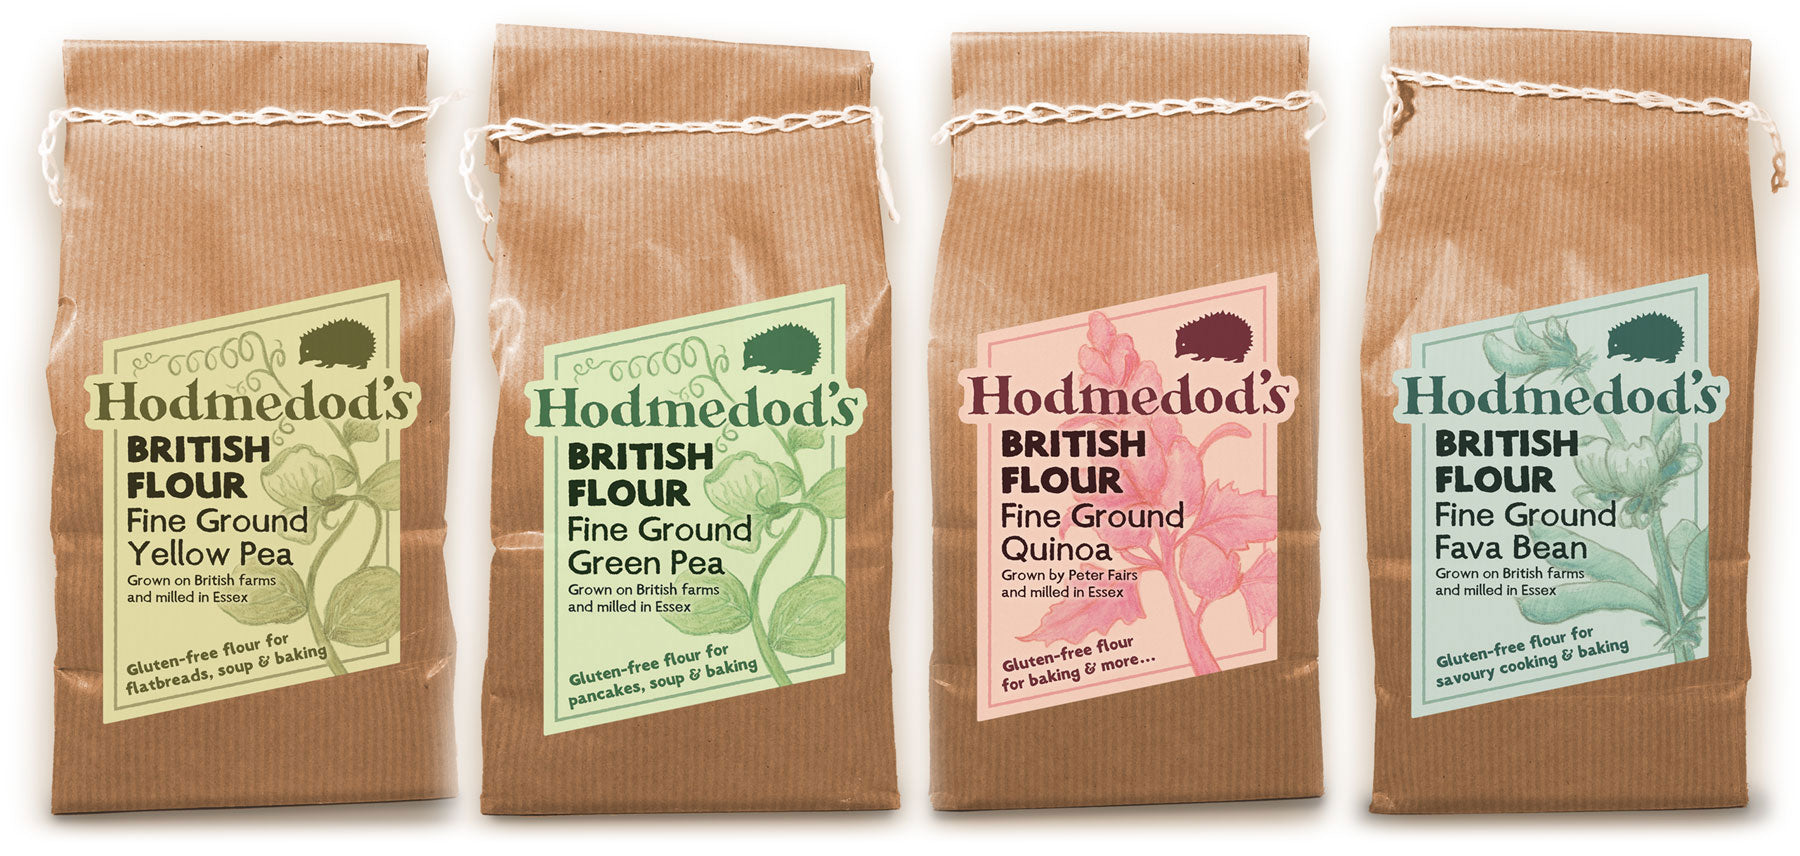 Gluten-free Pulse and Quinoa Flours - Hodmedod's British Pulses and Grains